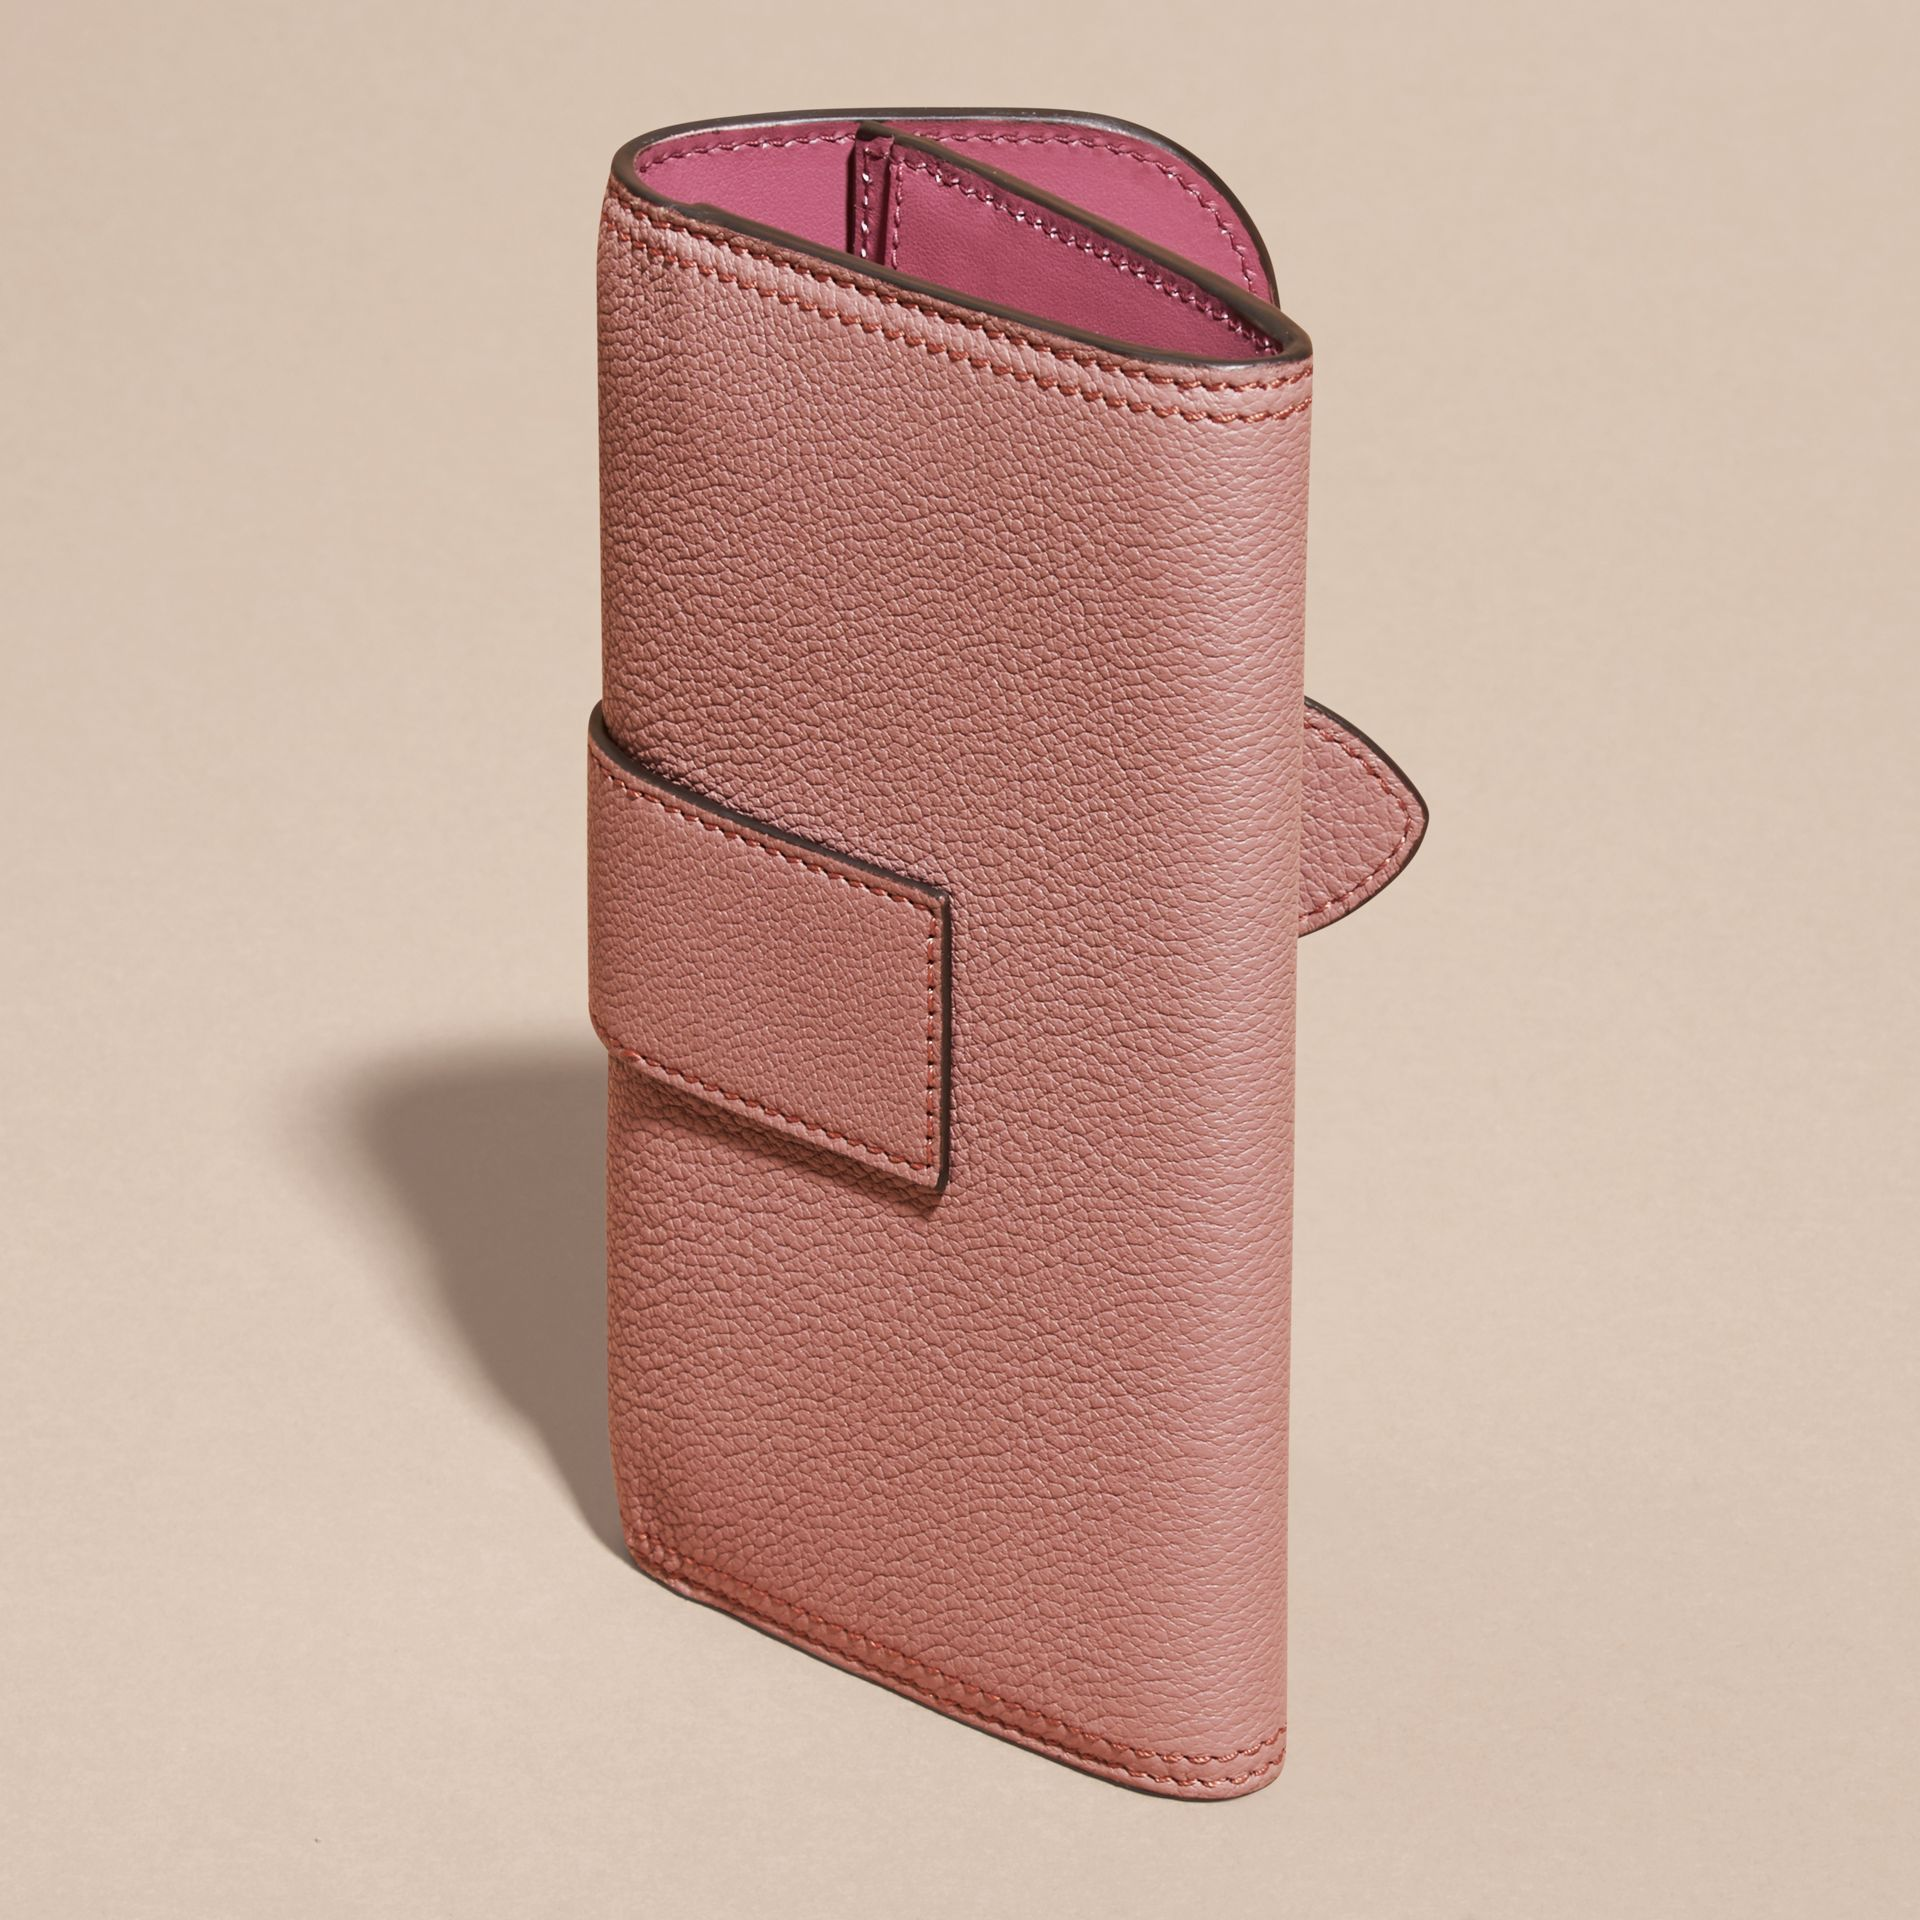 Dusty pink Textured Leather Continental Wallet Dusty Pink - gallery image 3